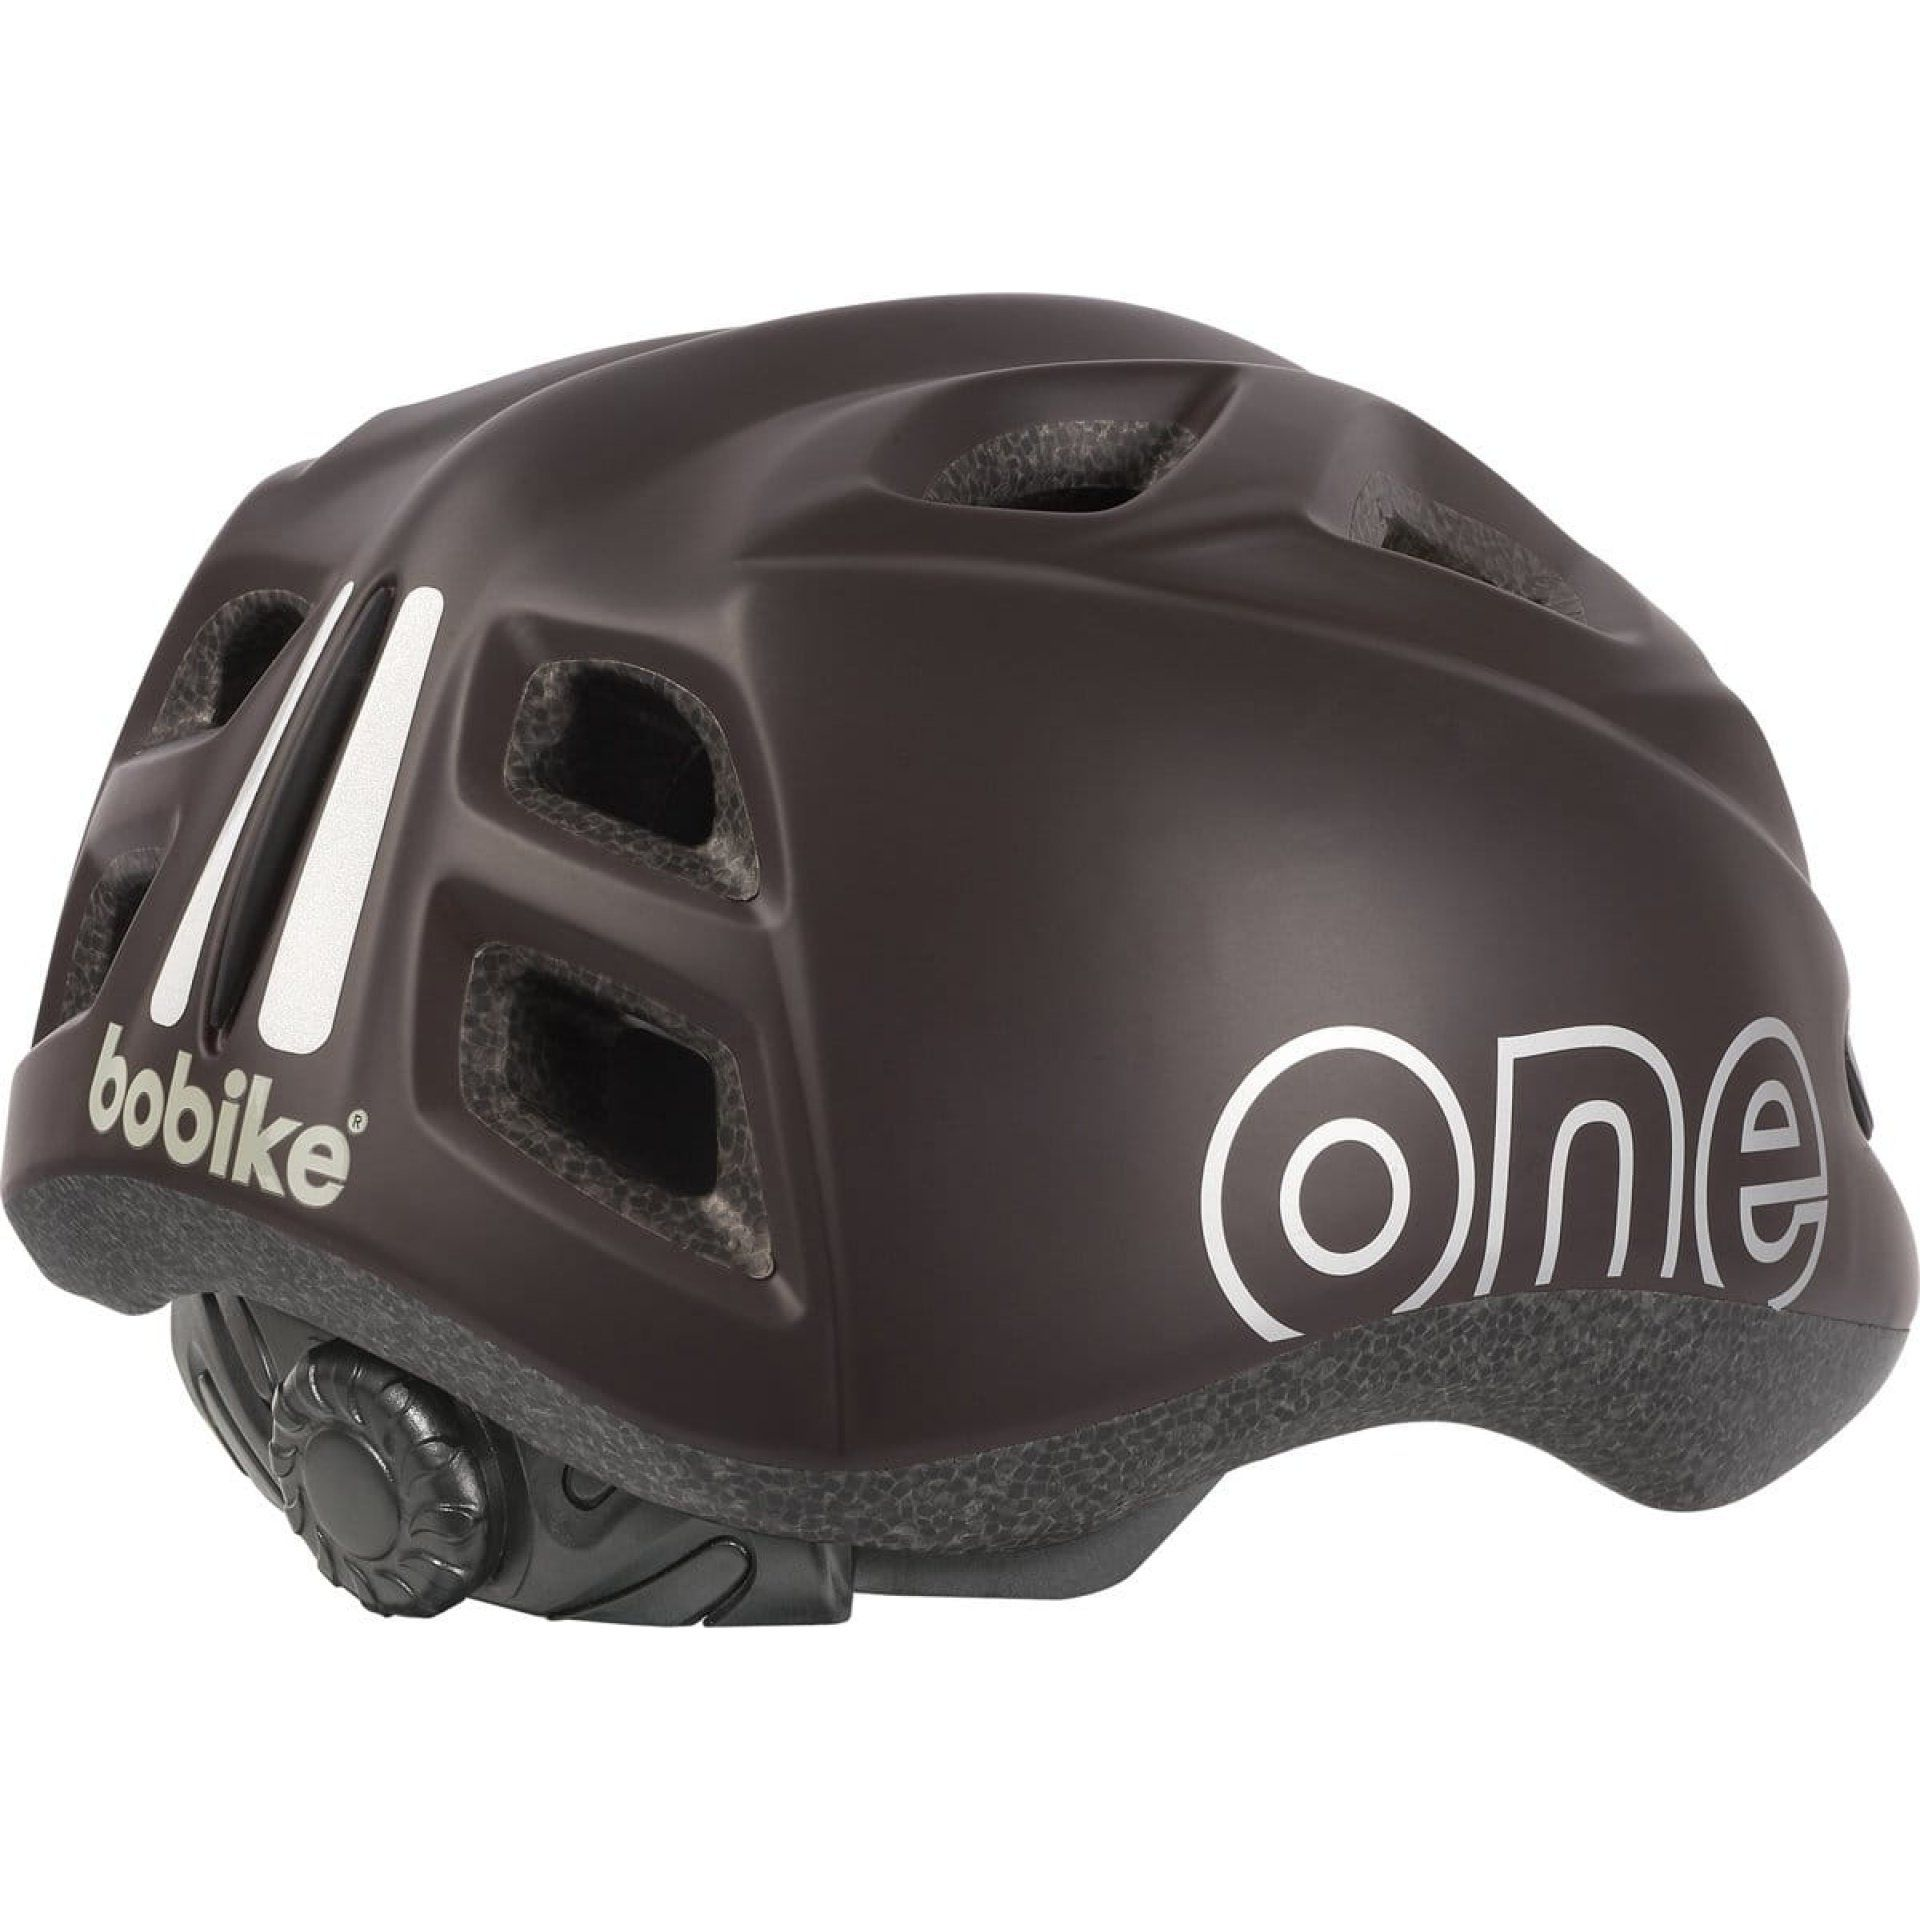 KASK ROWEROWY BOBIKE ONE PLUS COFFEE BROWN TYŁ